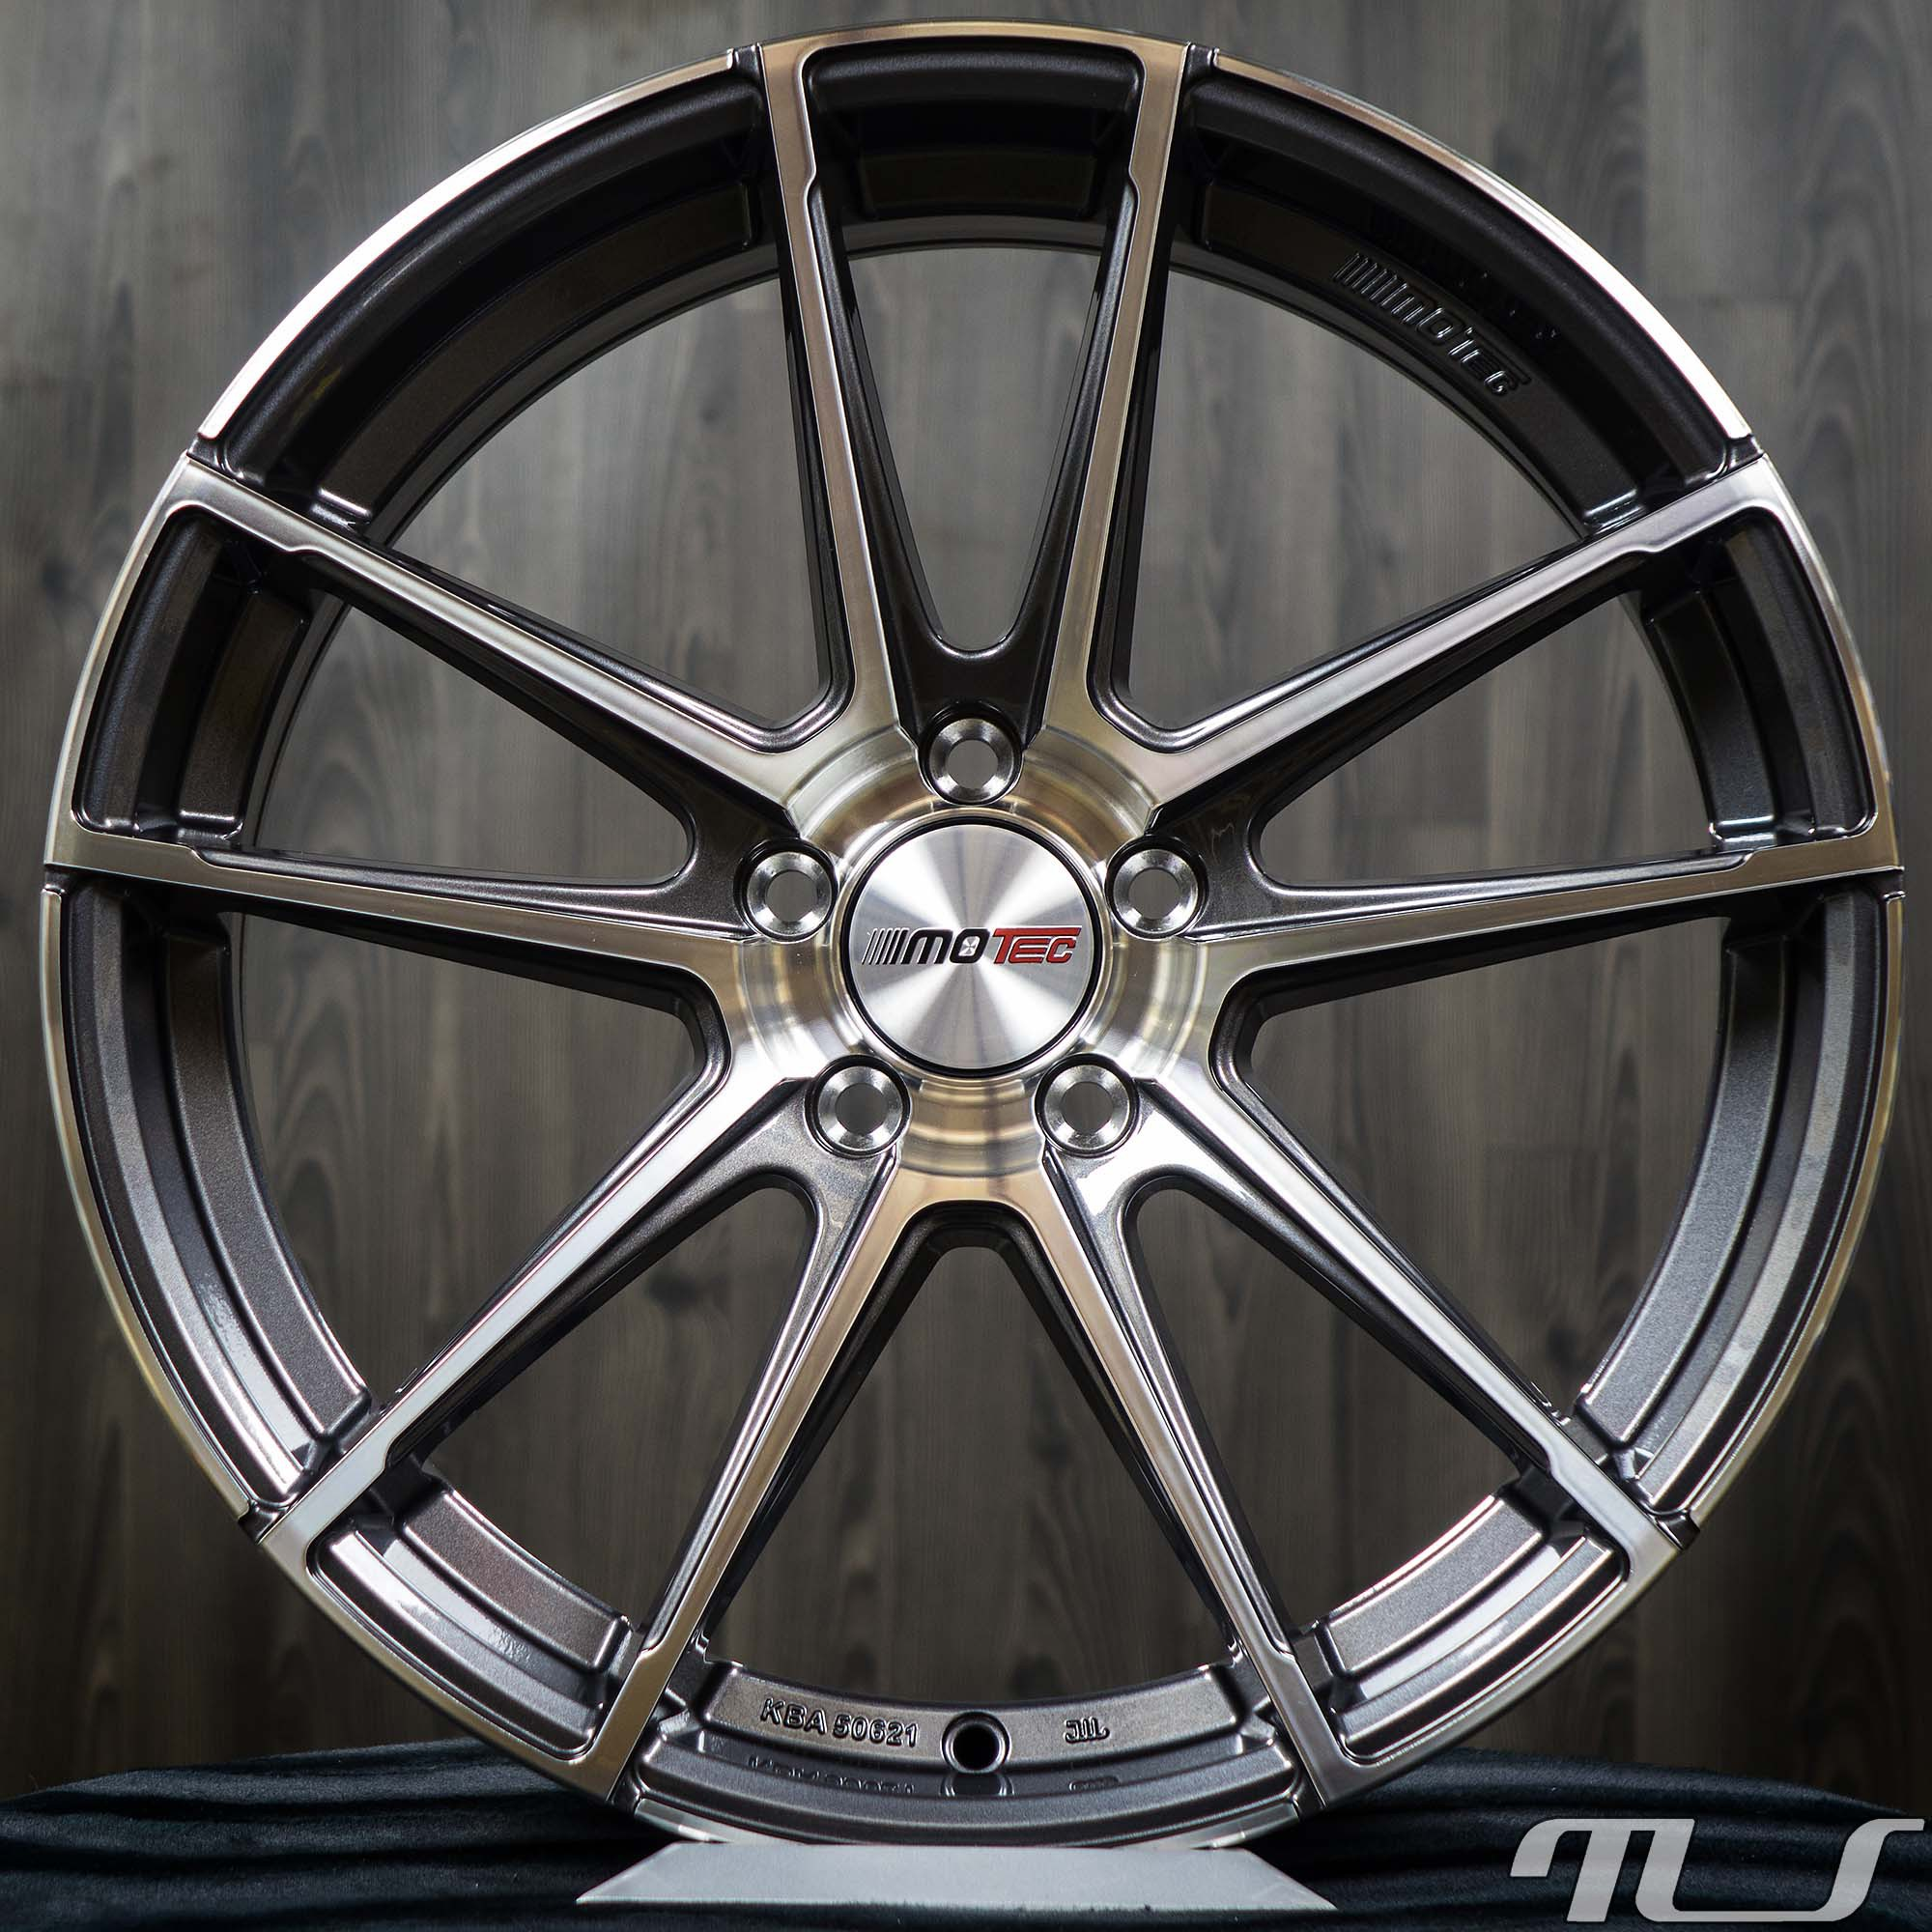 19 Inch Alloy Wheels For Mercedes Benz A B C E Cls Class W204 W205 W212 Amg Rims Third Party